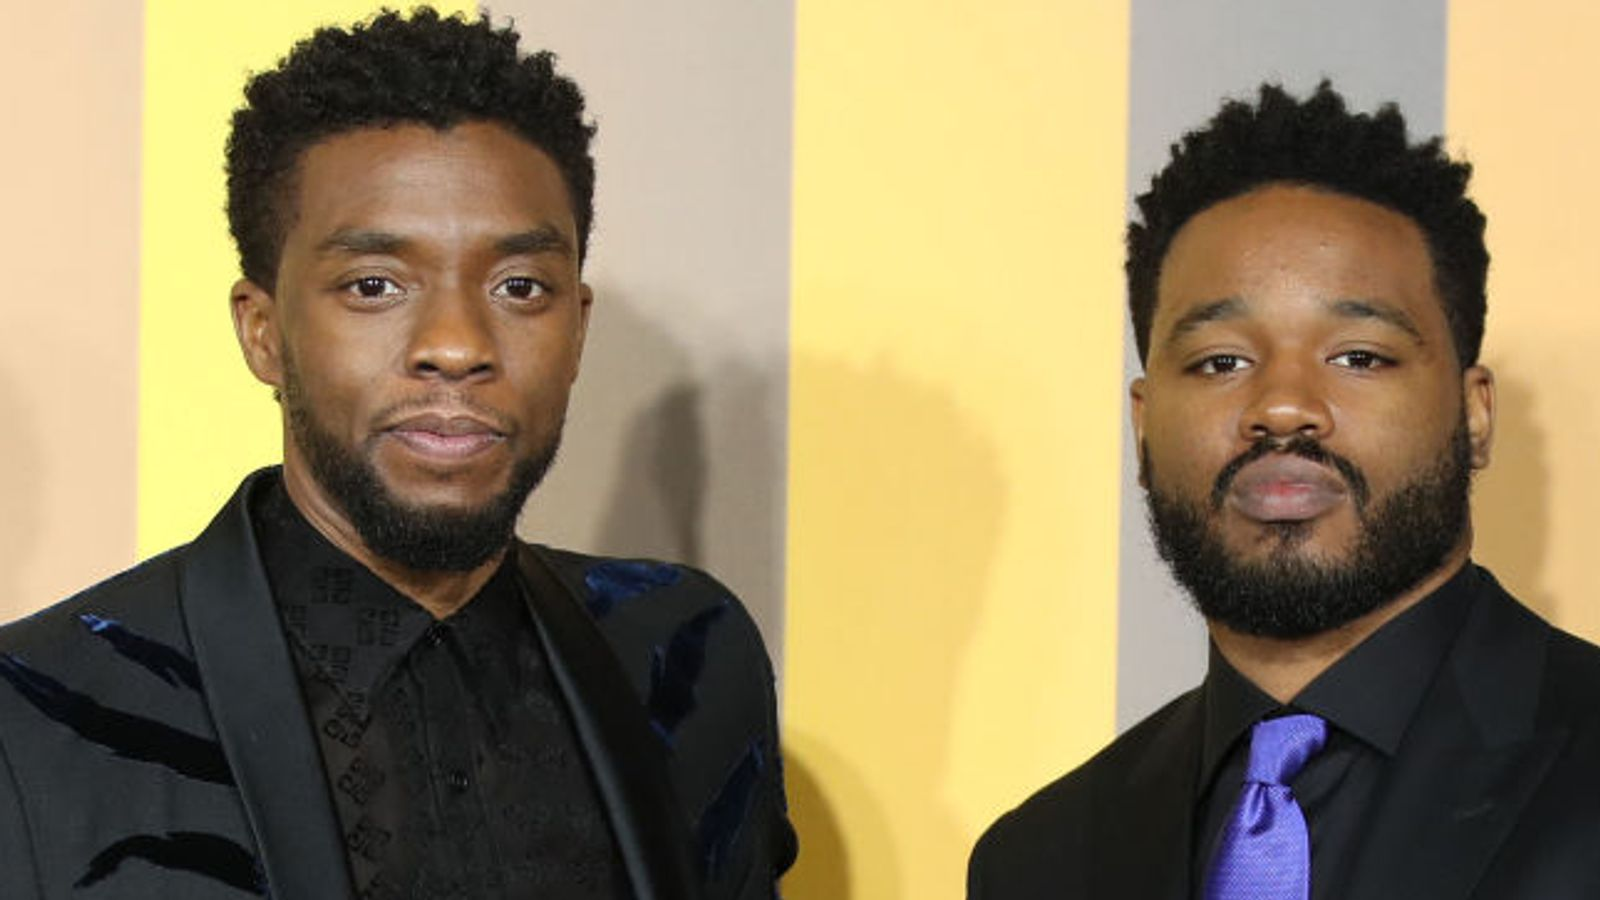 Chadwick Boseman loss of life: Black Panther director claims 'the ancestors spoke through' late star | Ents & Arts Information